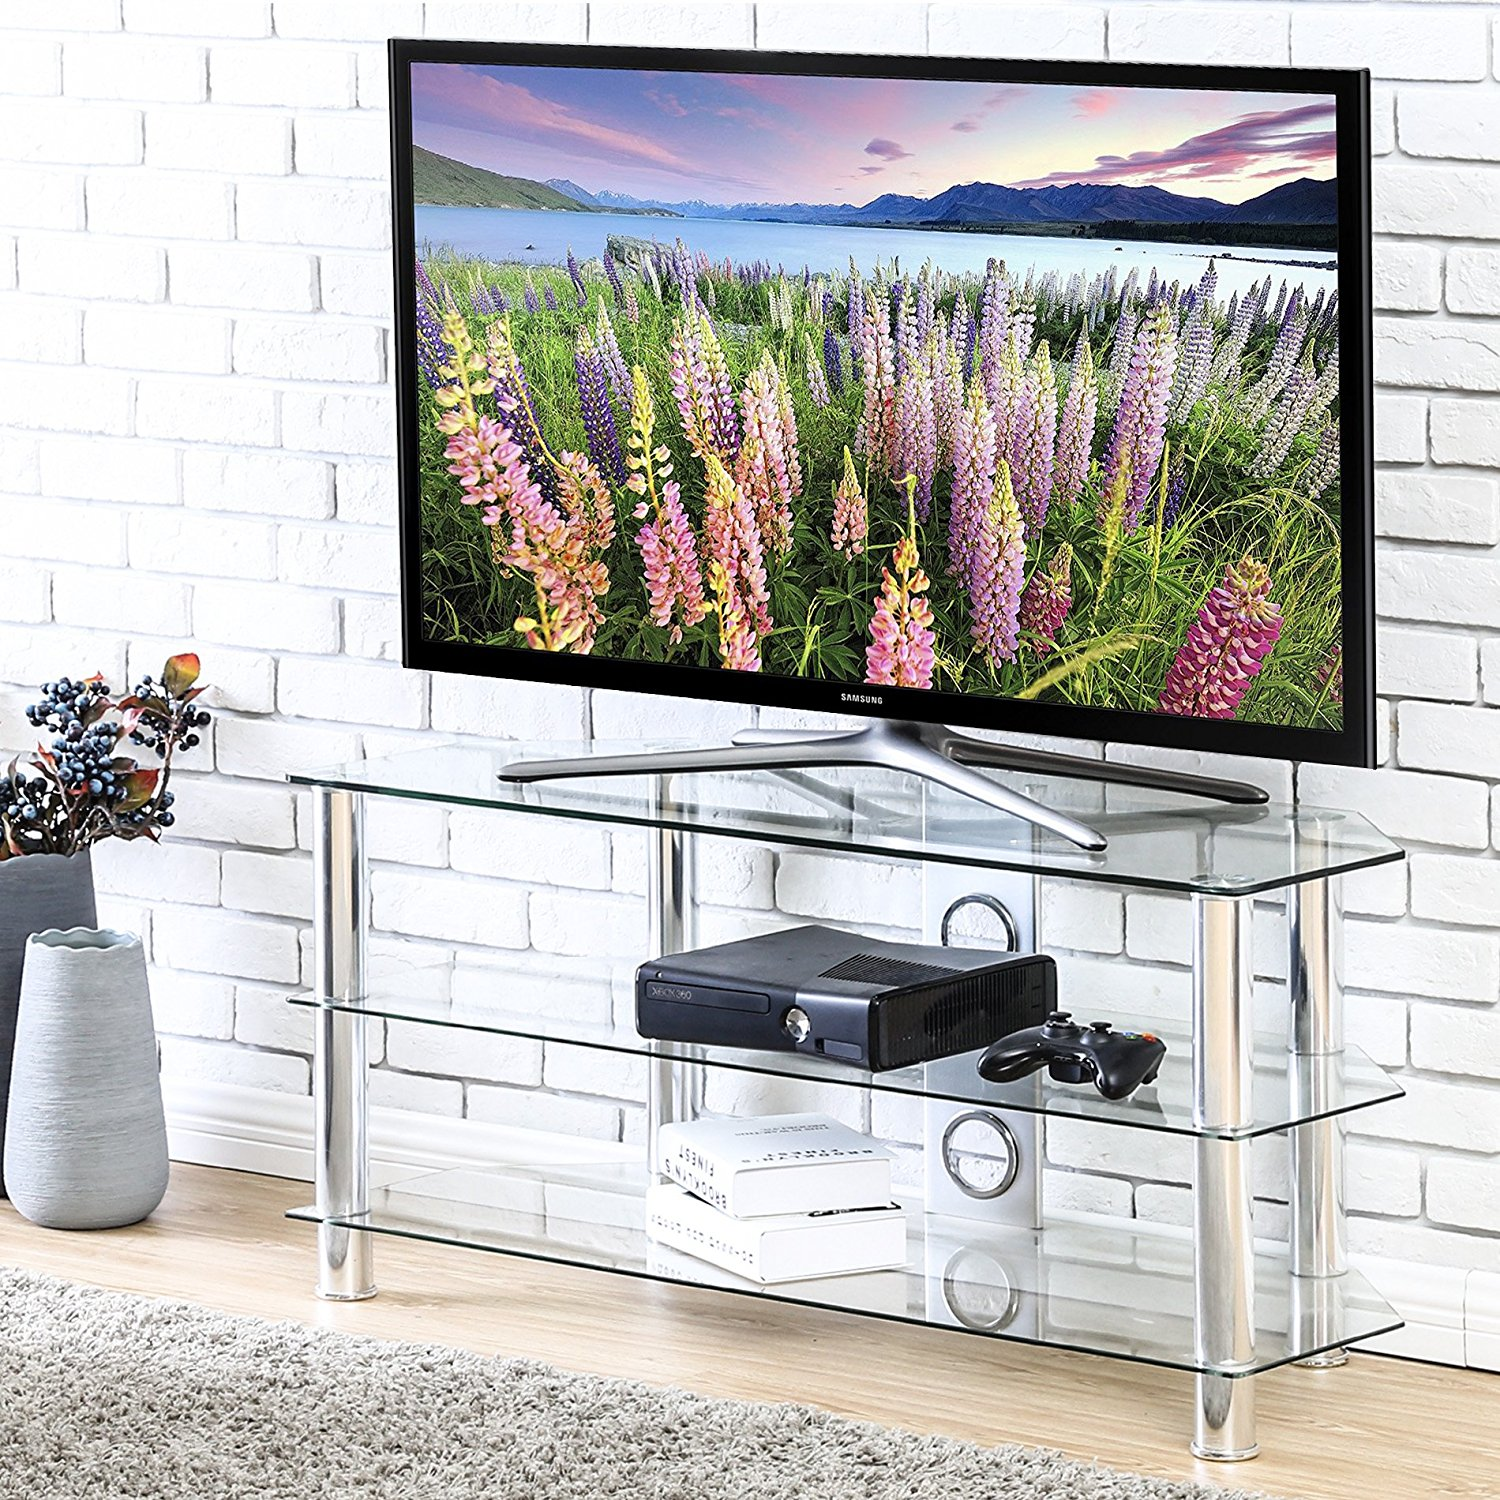 FITUEYES Glass Floor TV Stand for up to 50 inch Samsung Vizio Plasma LED LCD Oled TV TS310501GT